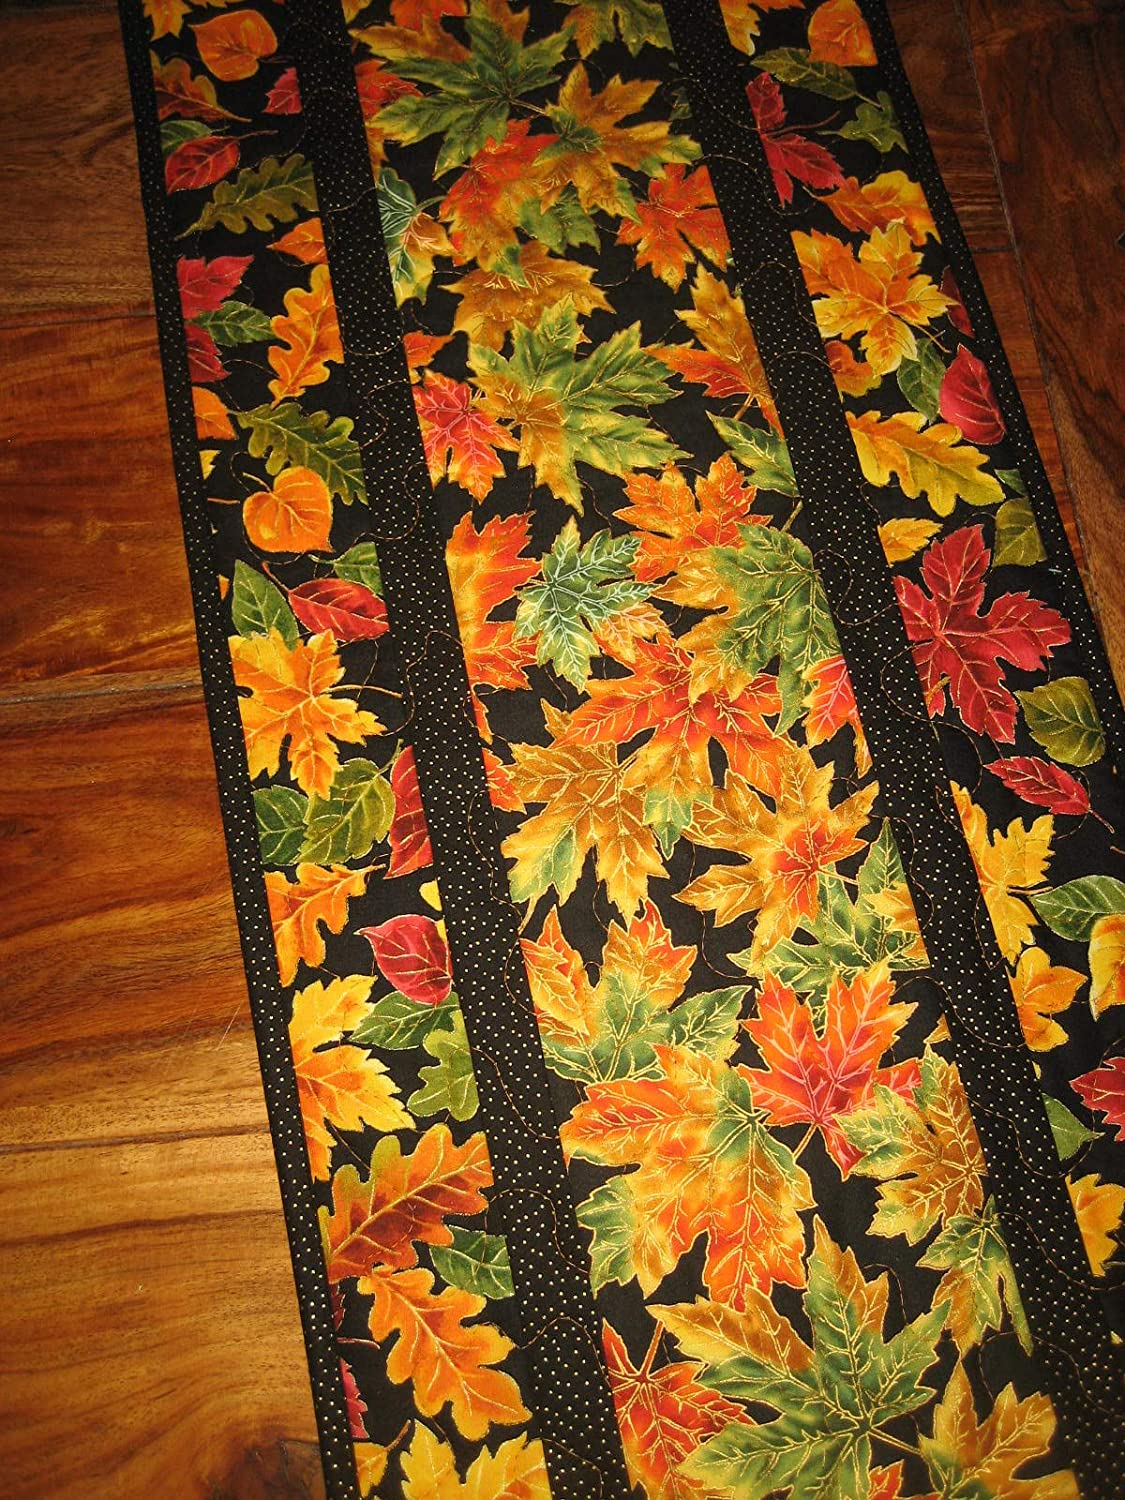 Rust Gold Autumn Leaves Reversible Quilted Dining Coffee Table 13 x 48 in. Fall Table Runner